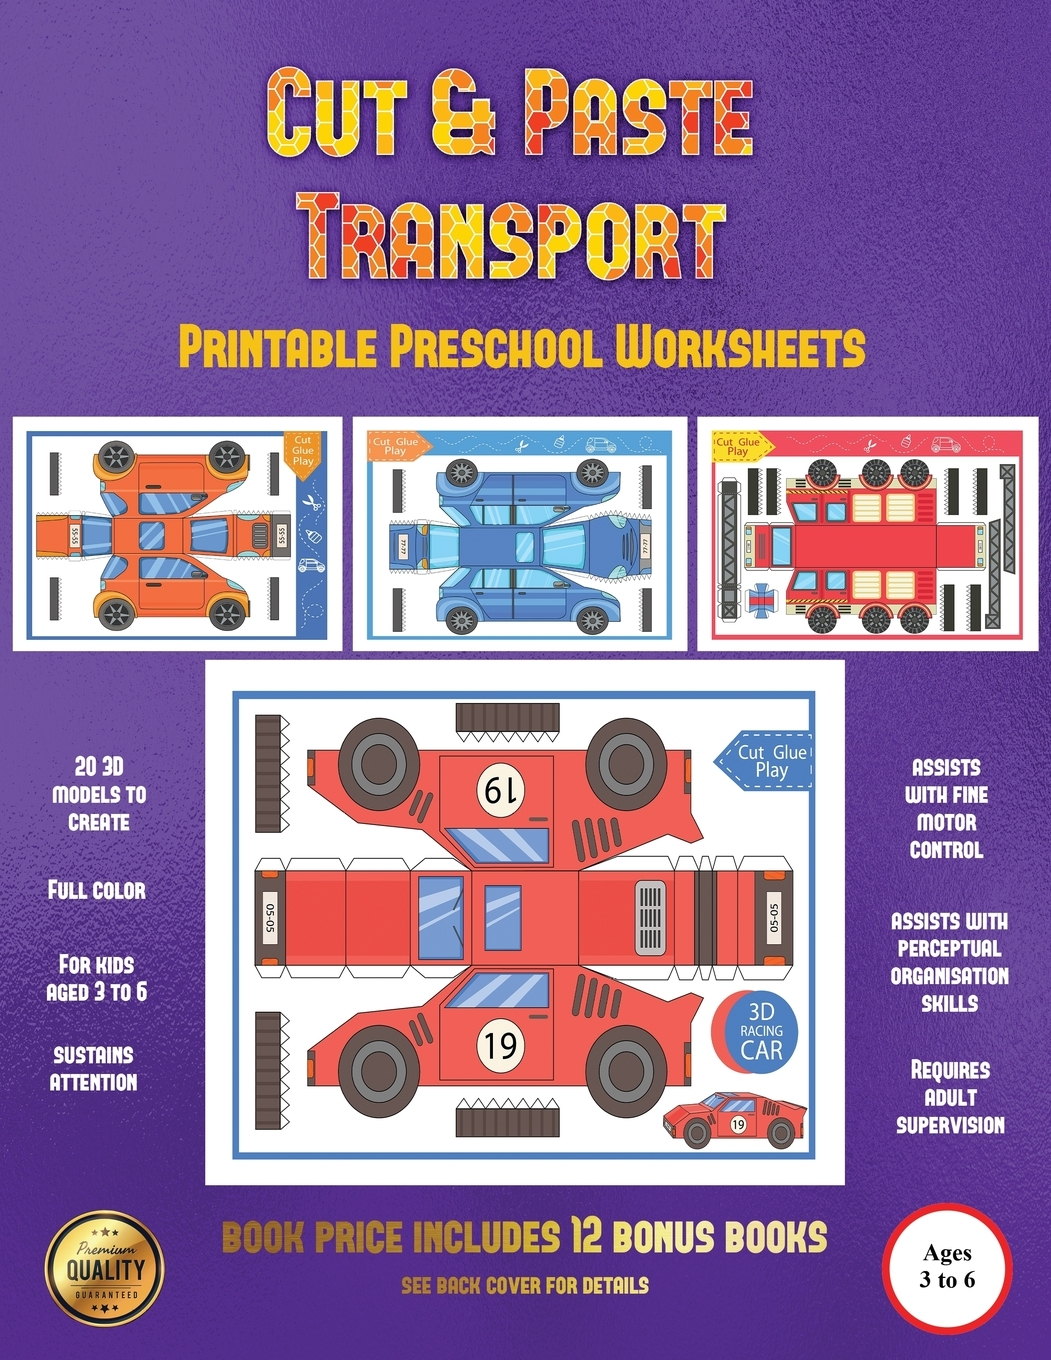 Printable Preschool Worksheets Cut And Paste Transport